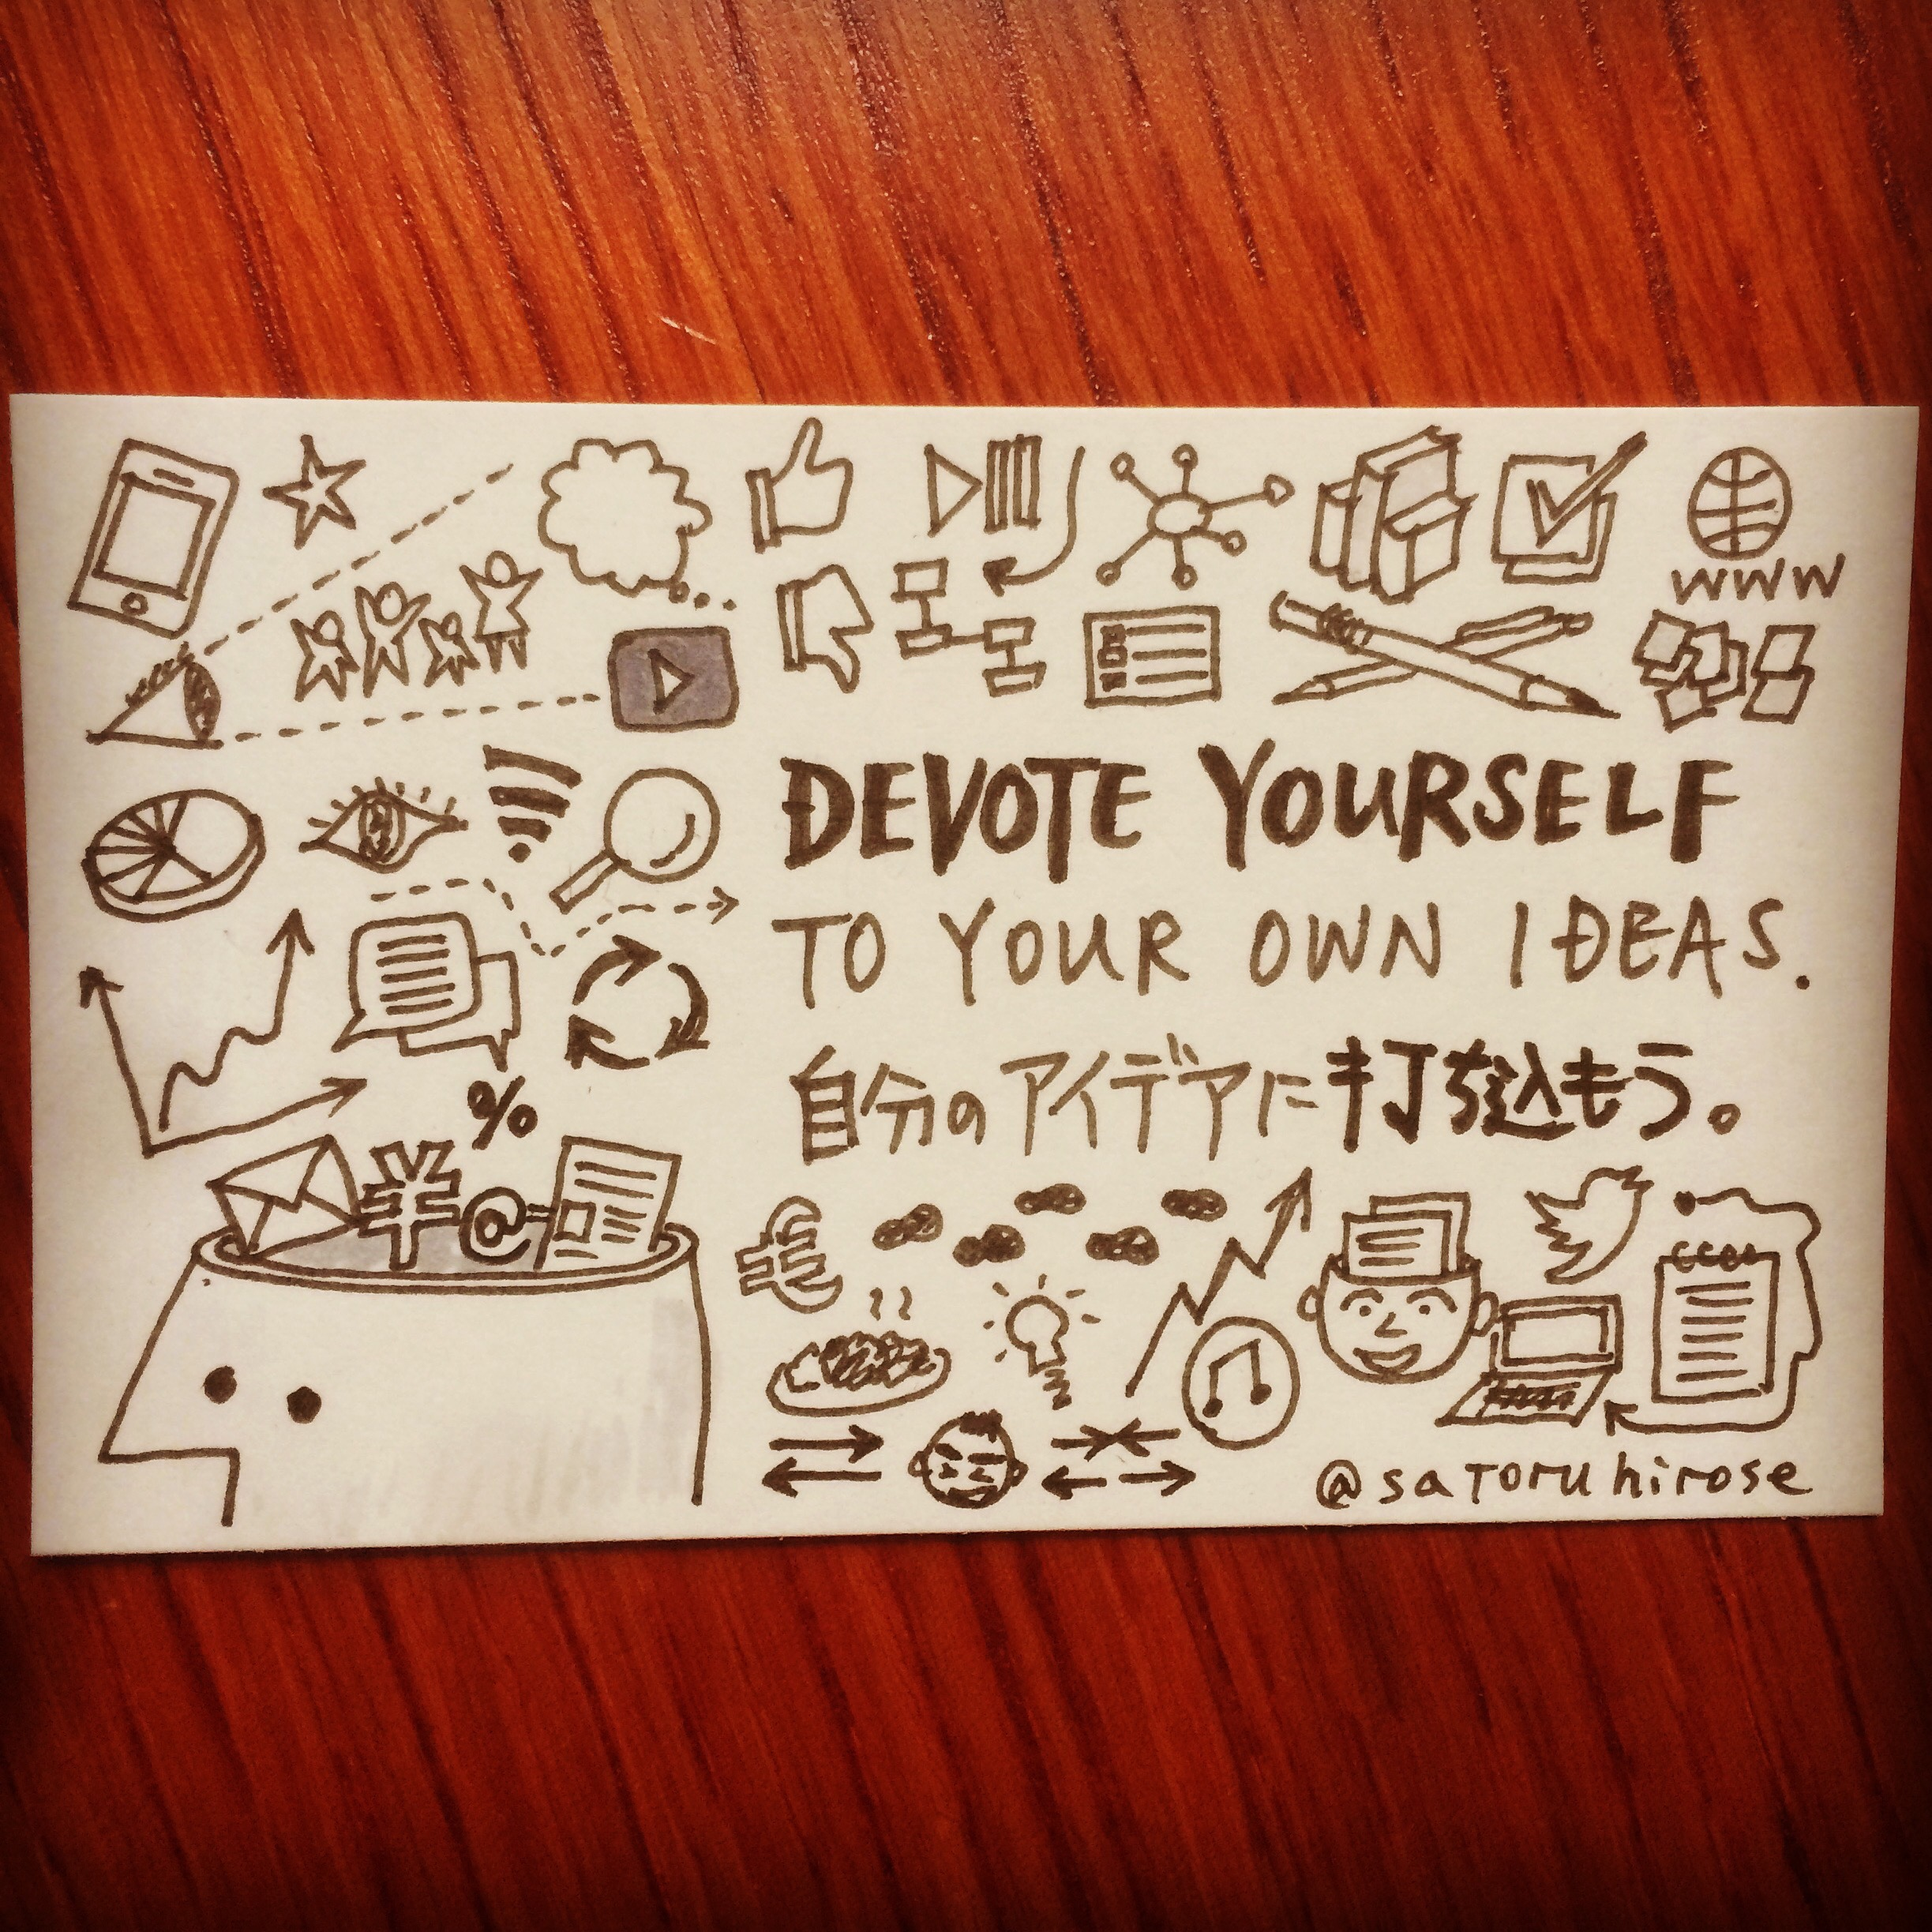 Devote yourself to your own ideas.